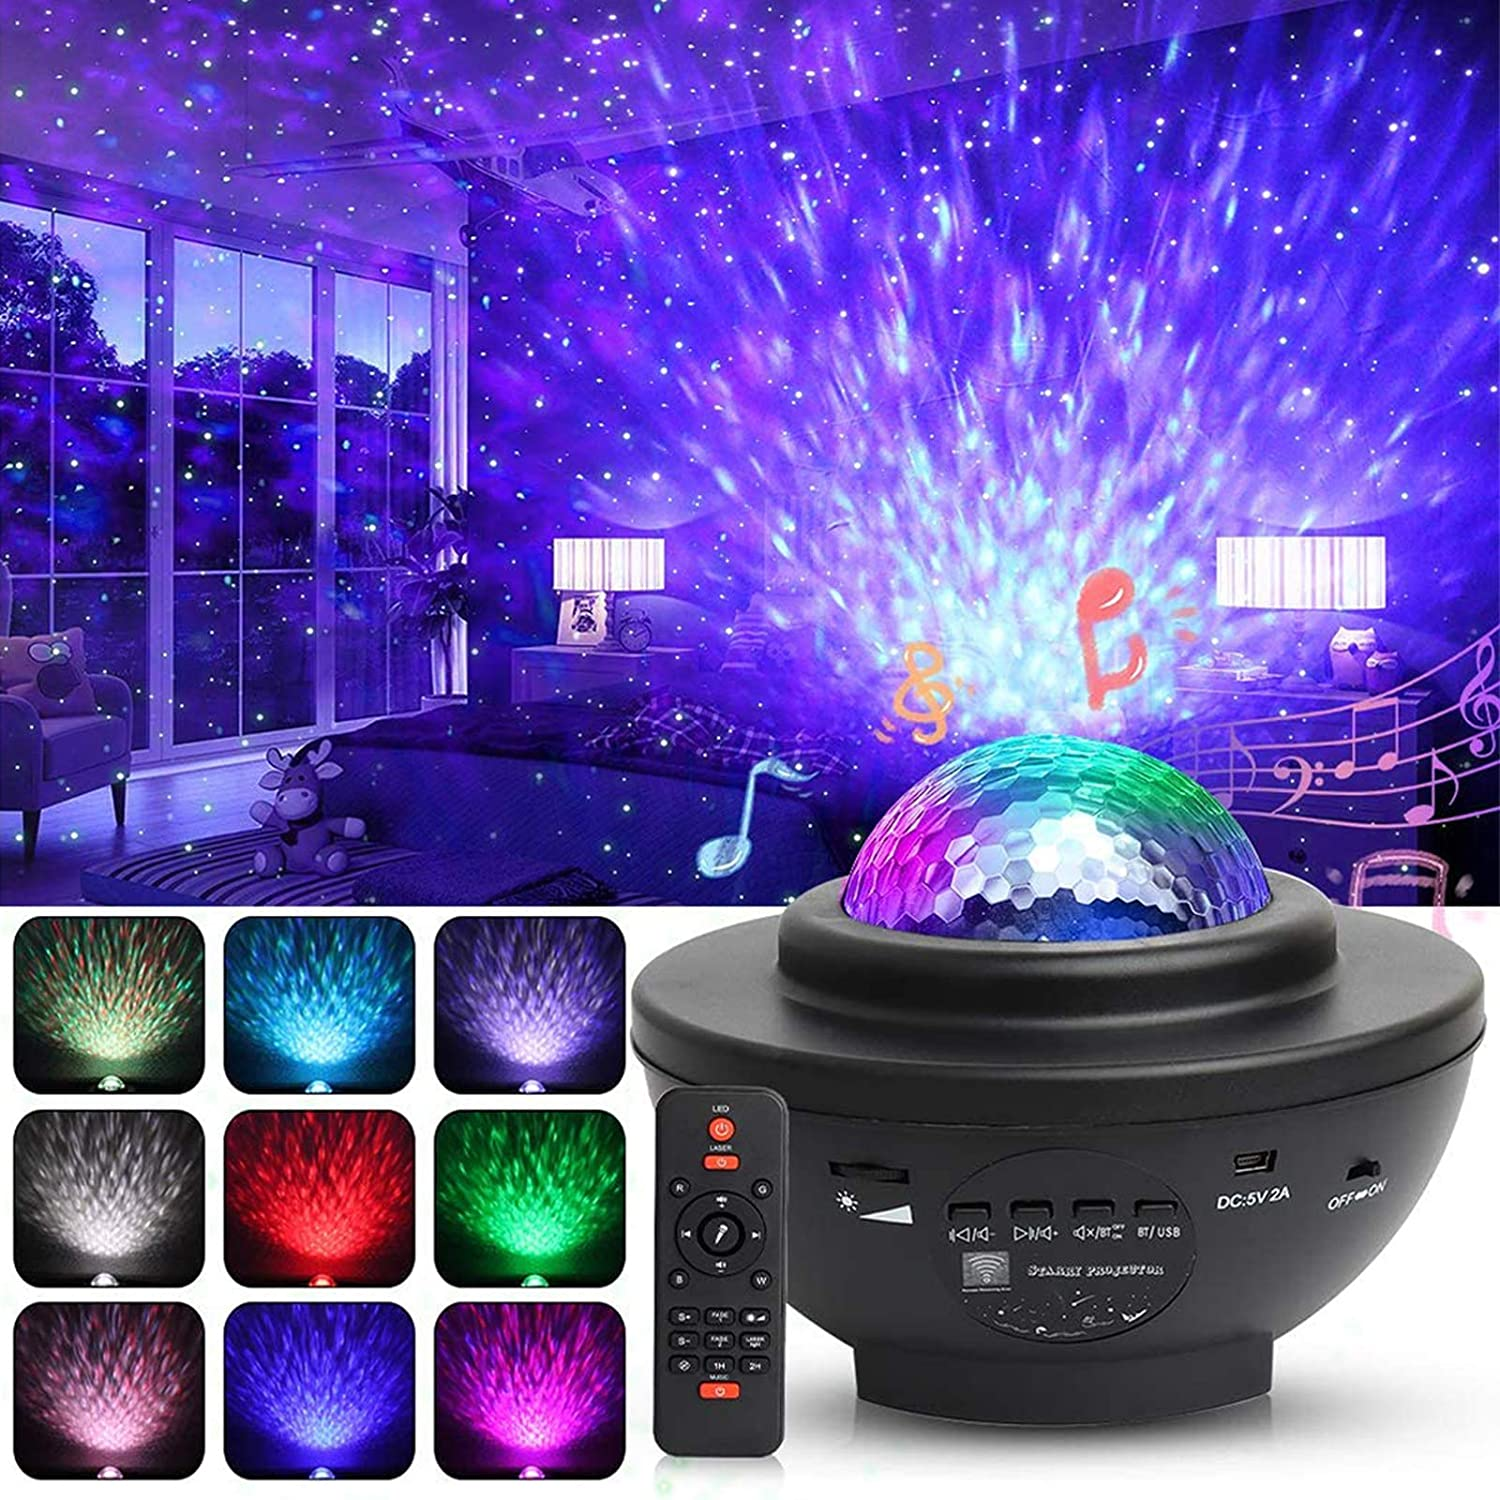 Ocean Wave Projector Star Night Light,Color Changing Music Player Sleep Night Lamp for Kids Adults Nursery Bedroom Living Room